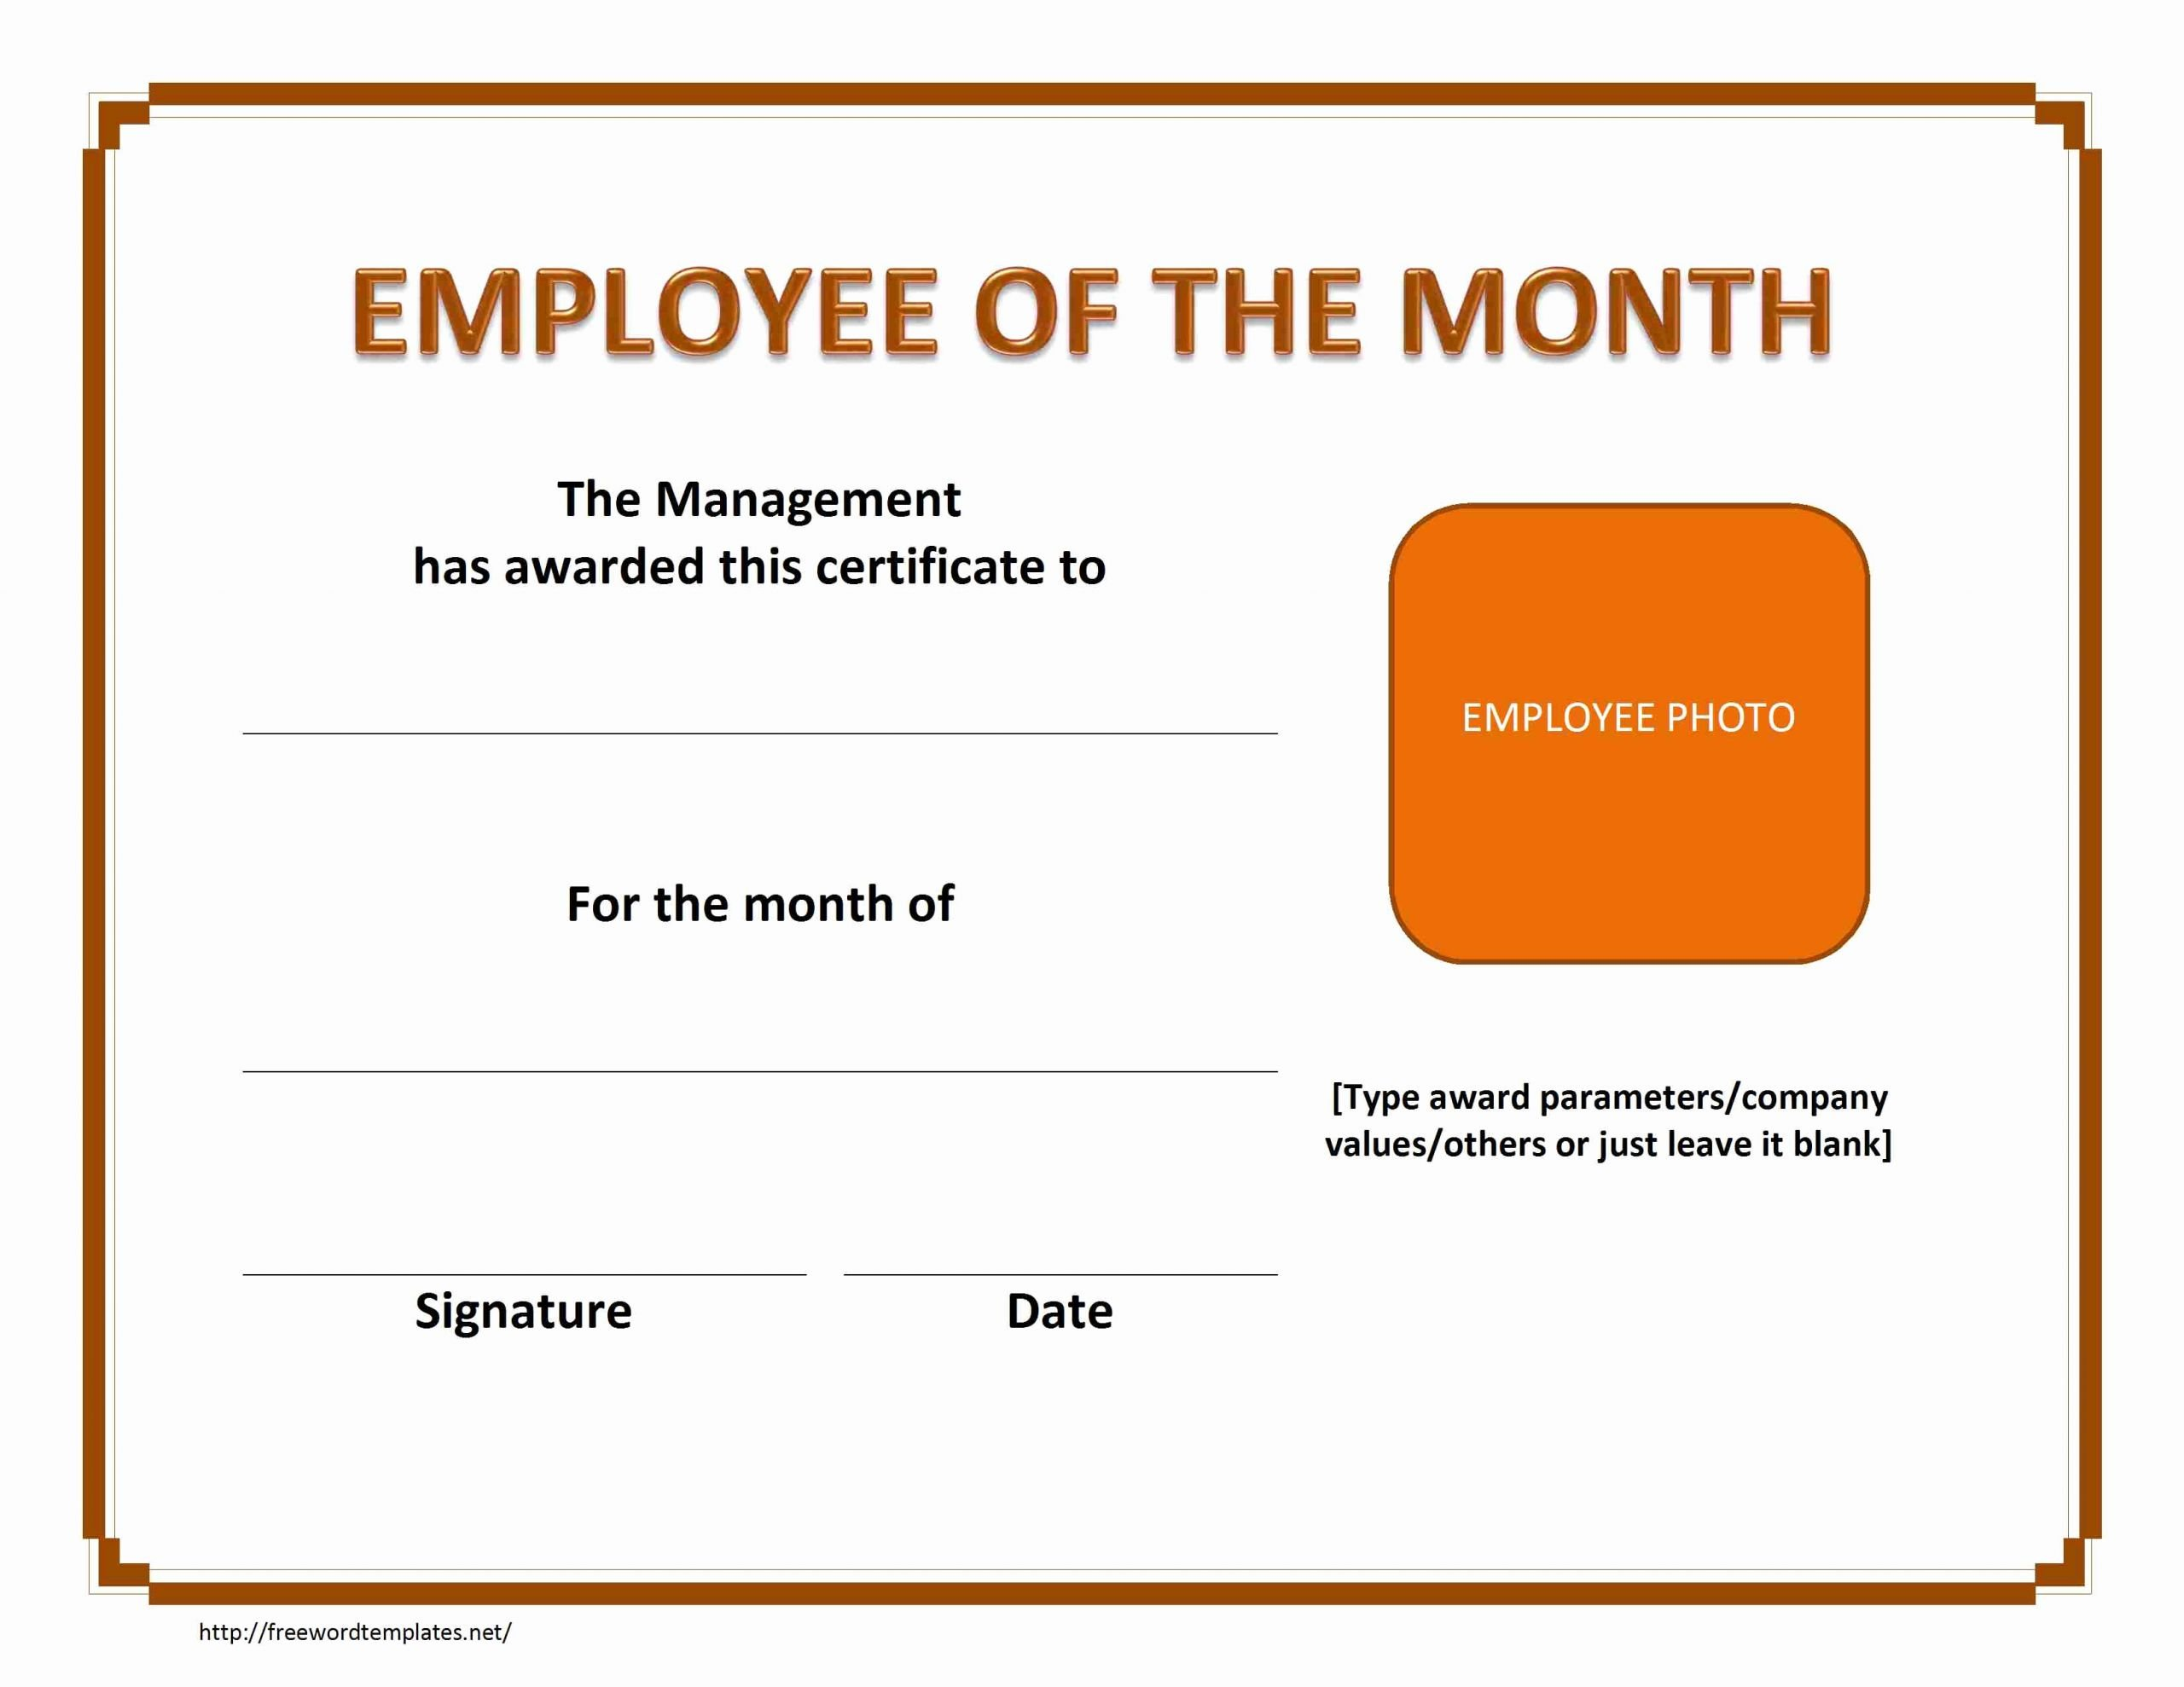 Employee Of the Month Photo Luxury Employee Of the Month Certificate